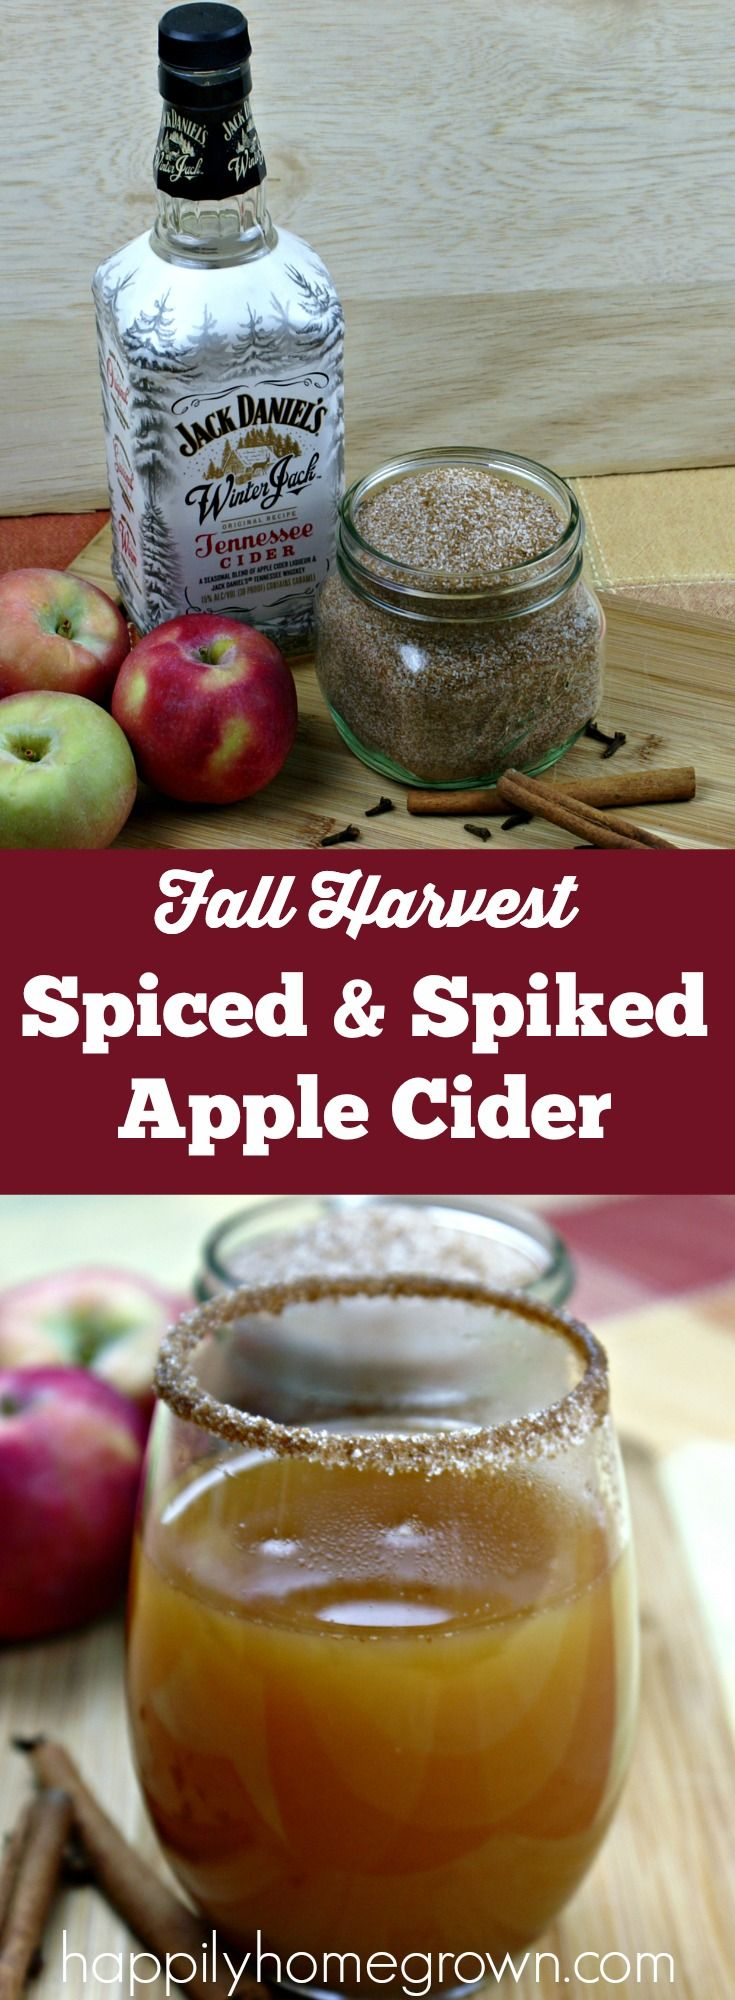 Spiced & spiked apple cider tastes like apple pie, with that little bit of extra heat in the back that you get from whiskey. Its the perfect fall cocktail! via @homegrownhuston